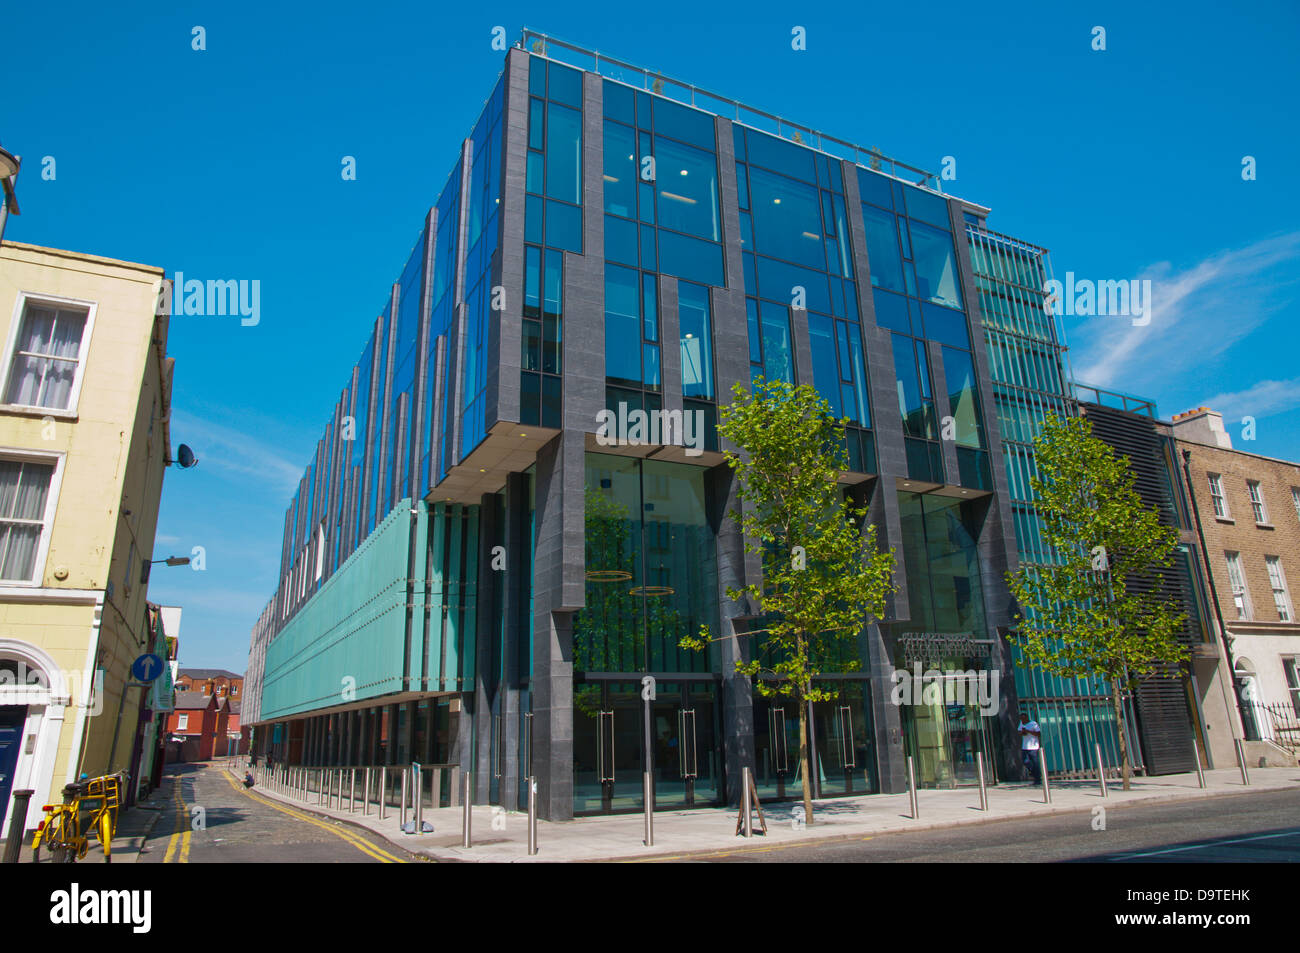 Chartered Accountants House along Pearse street Docklands area central Dublin Ireland Europe - Stock Image